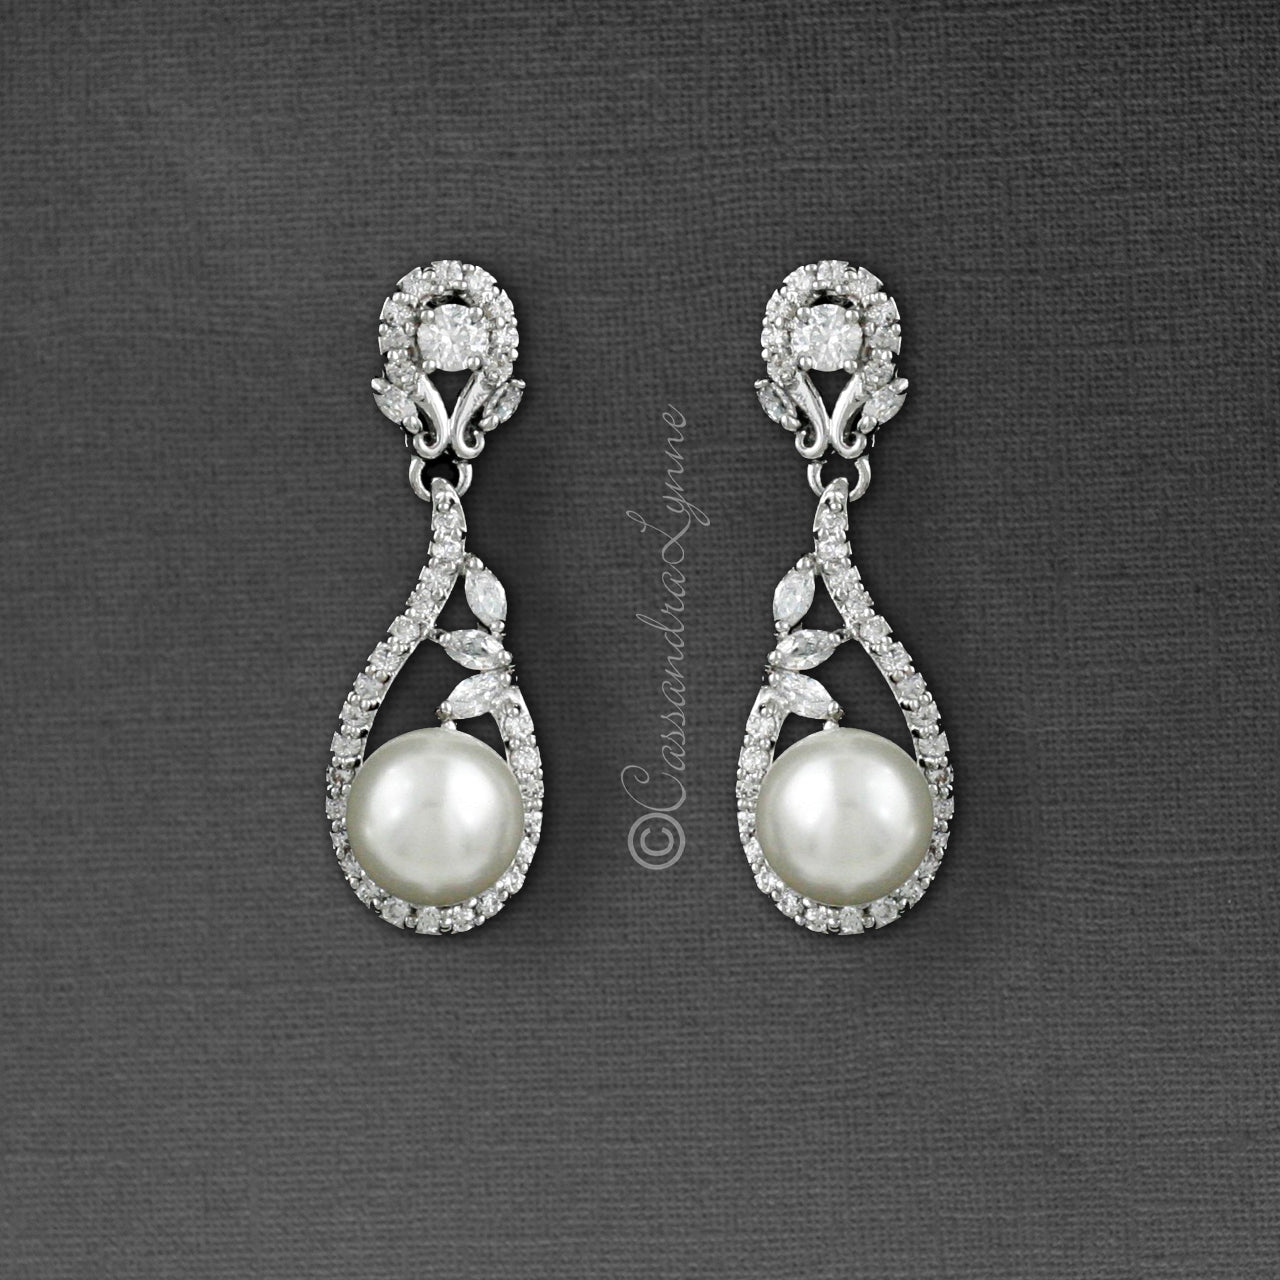 Clip-On CZ Drop Earrings with Pearls for the Bride